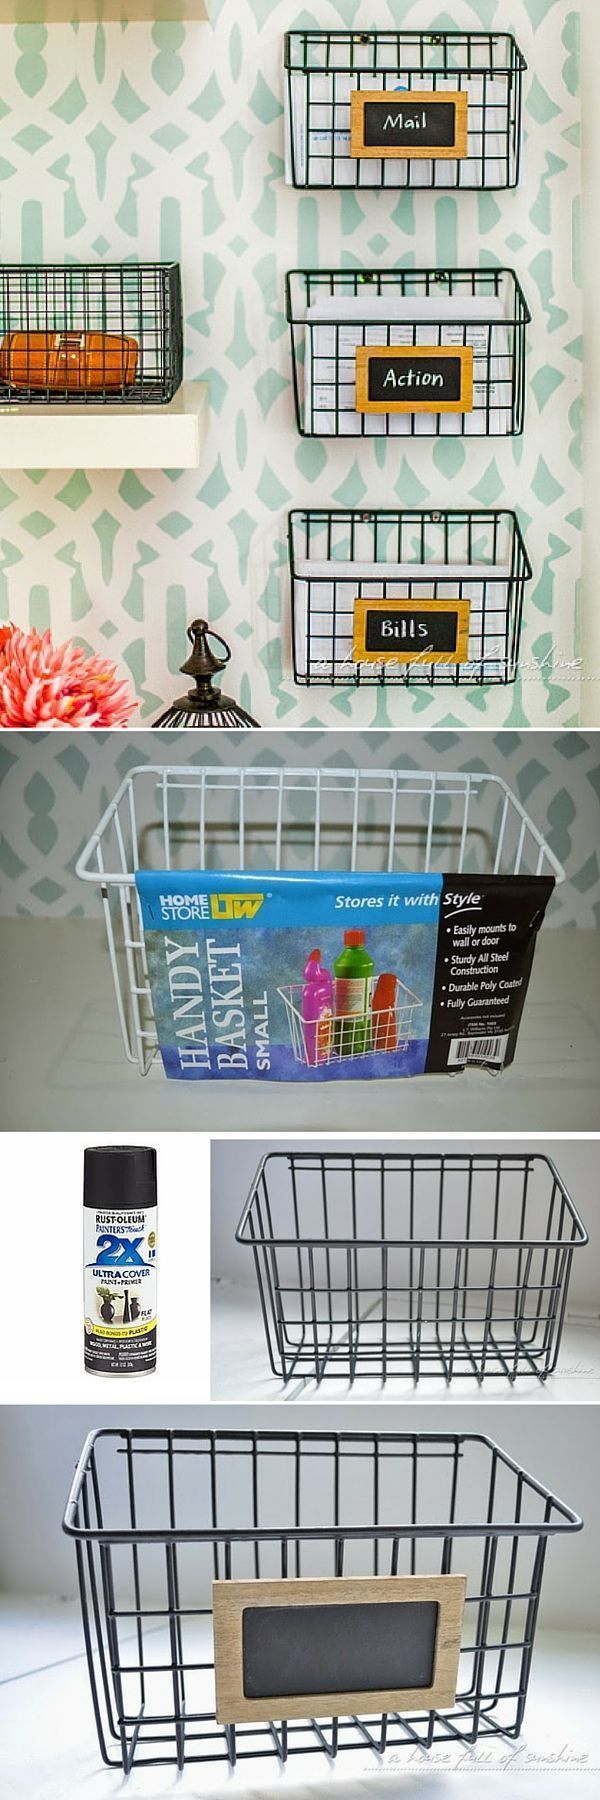 awesome nice 15 DIY Projects to Make Your Home Look Classy......